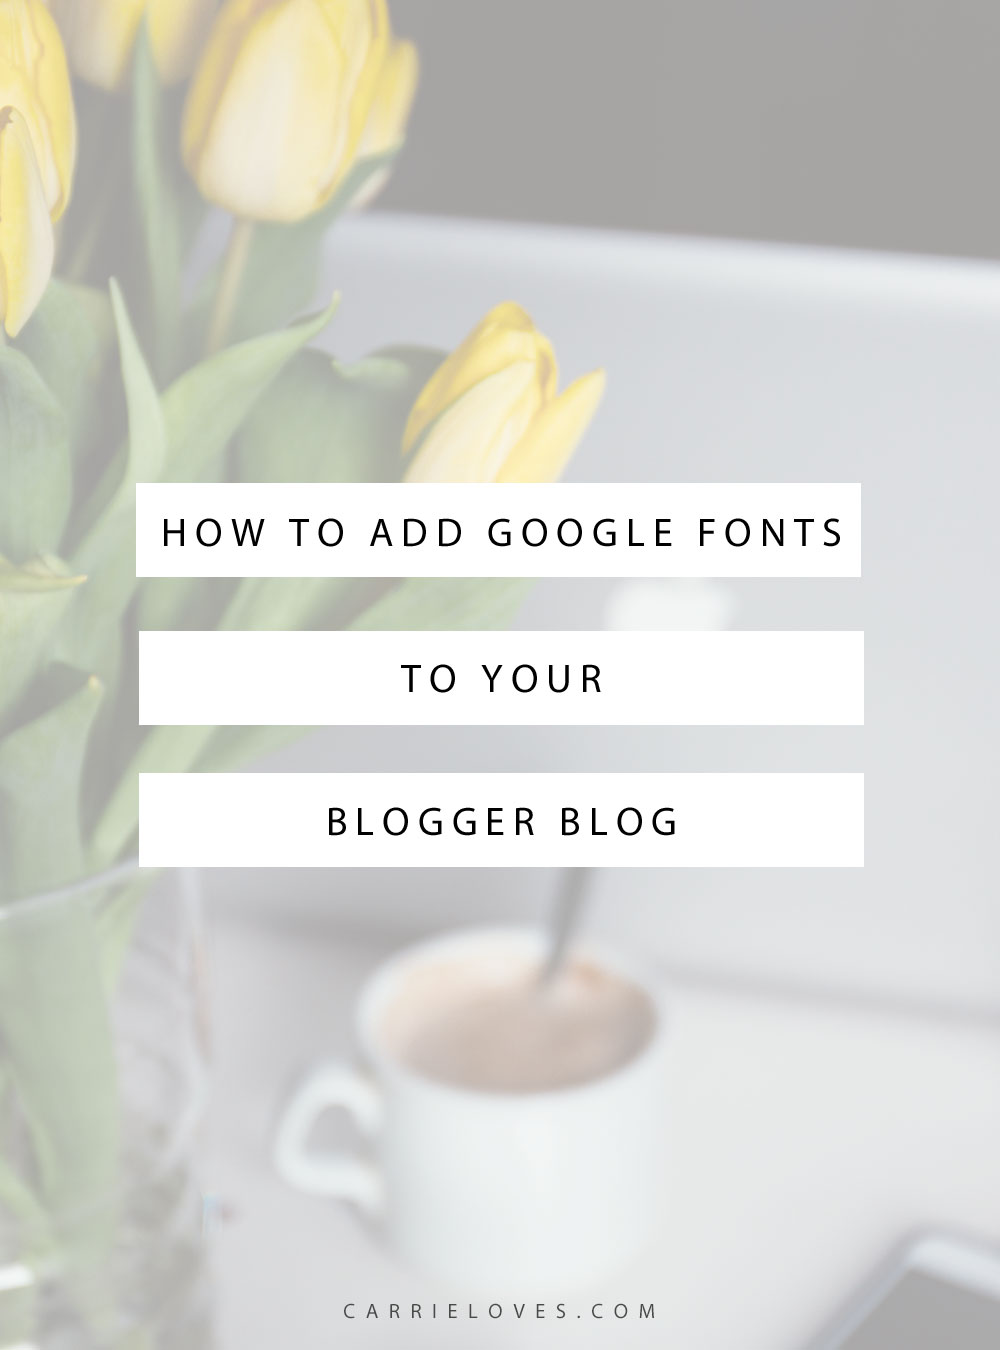 How to add Google fonts to your Blogger blog - Carrie Loves Blog